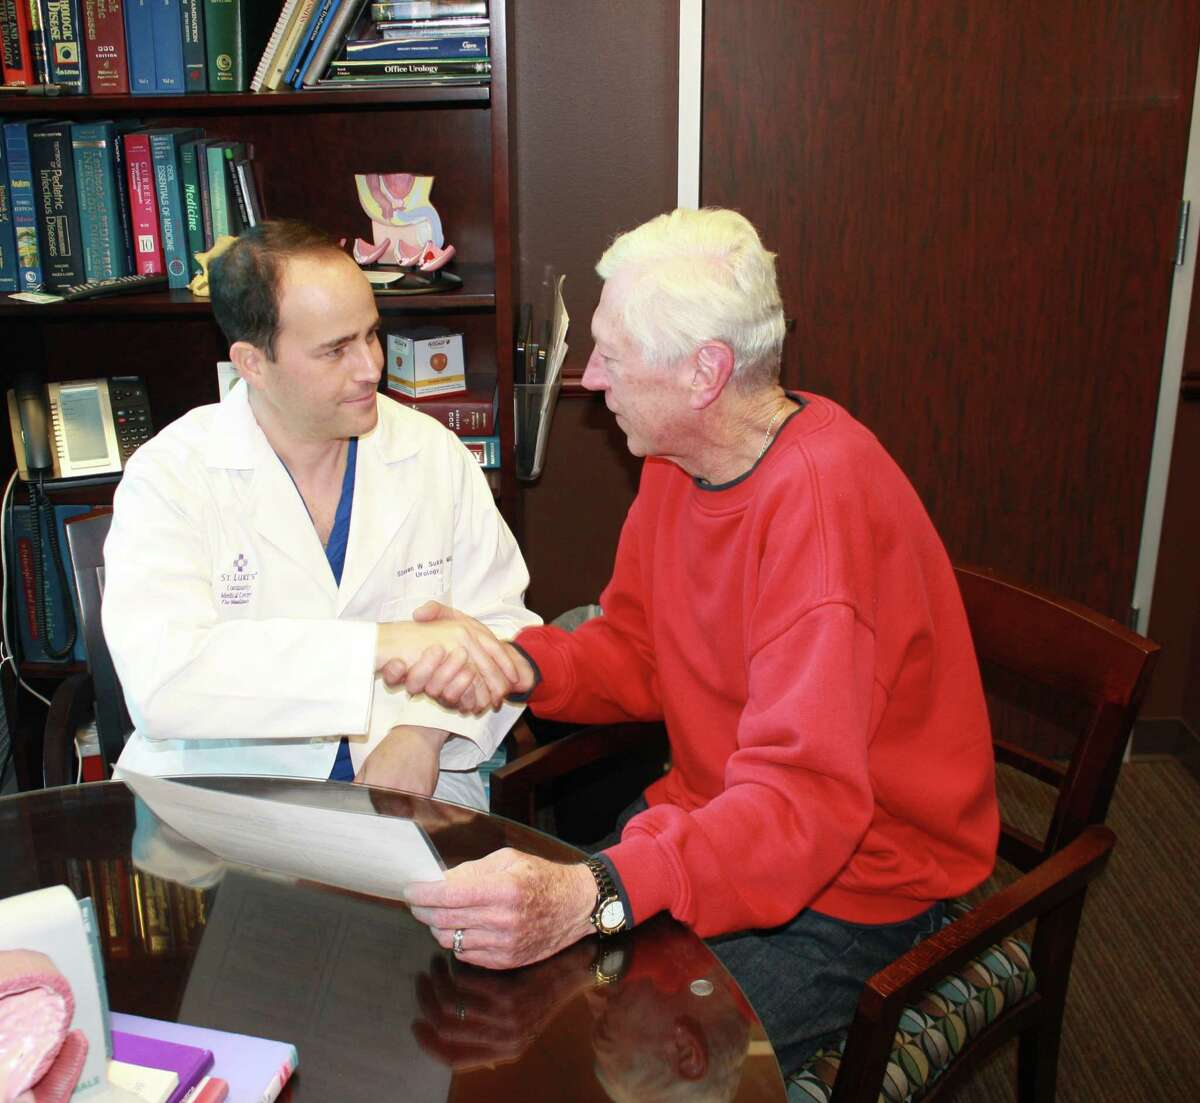 A look inside St. Luke's Performance Medicine in The Woodlands.